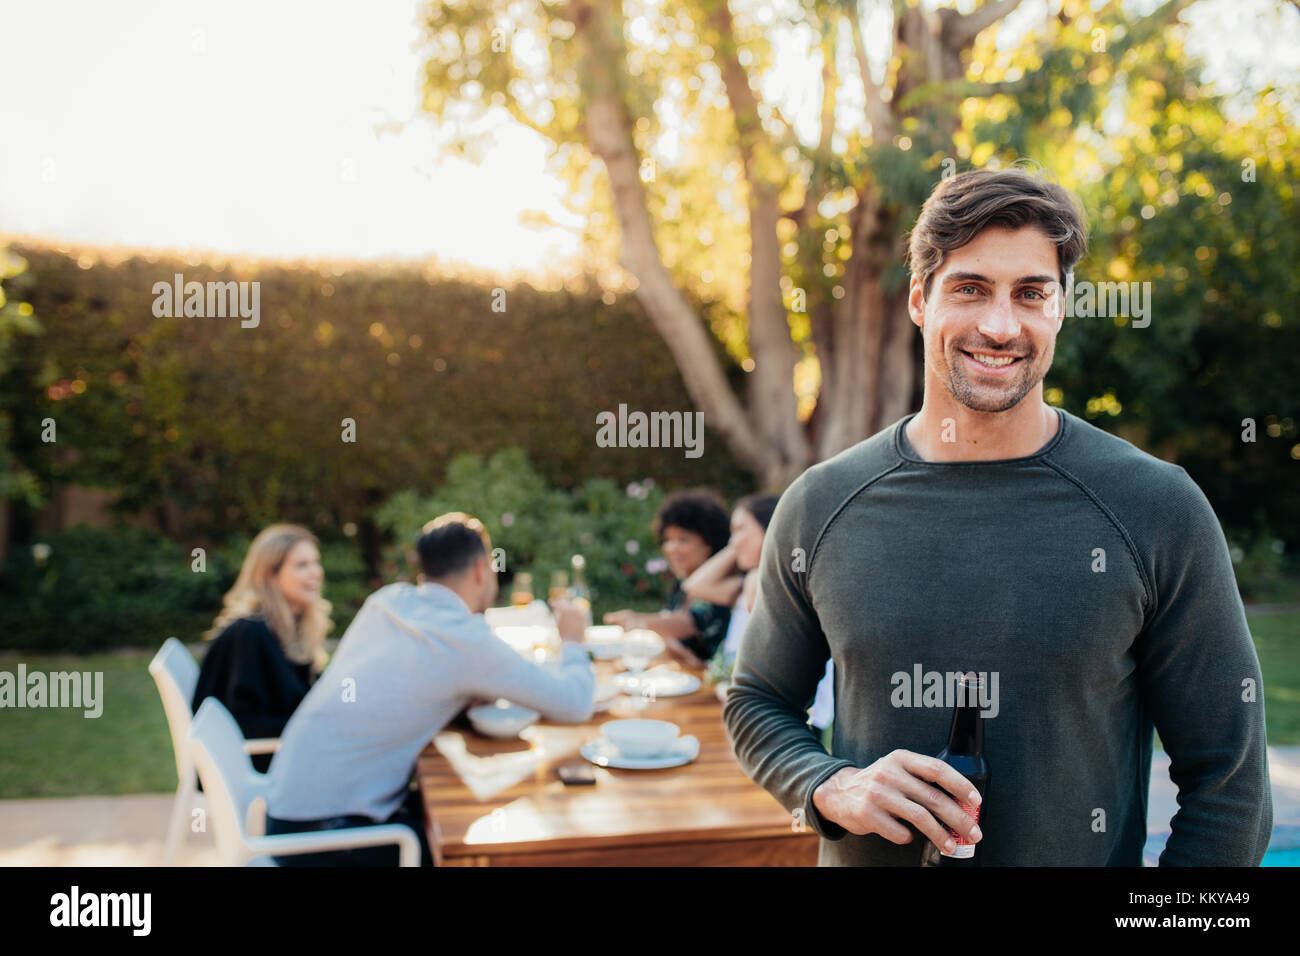 Handsome young man standing outdoors with friends sitting in background having food. Man with beer at outdoor party. - Stock Image